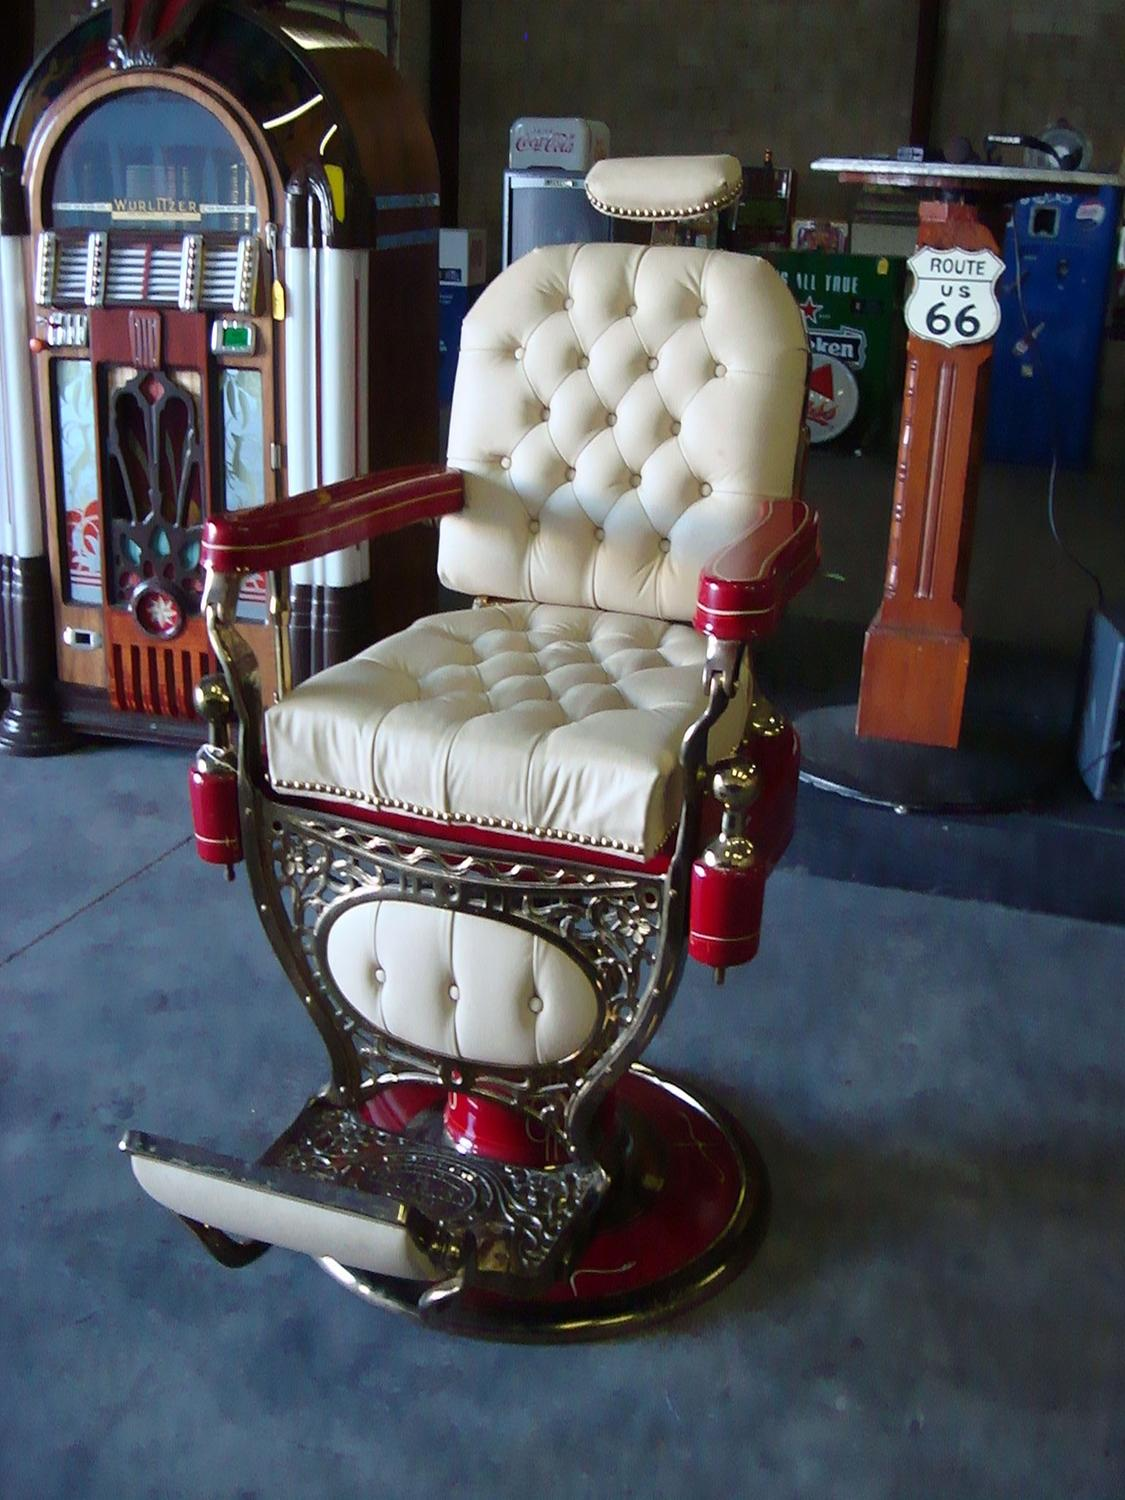 Barber Chair Parts The Finest Barber Chair On Planet Earth Drake Hotel